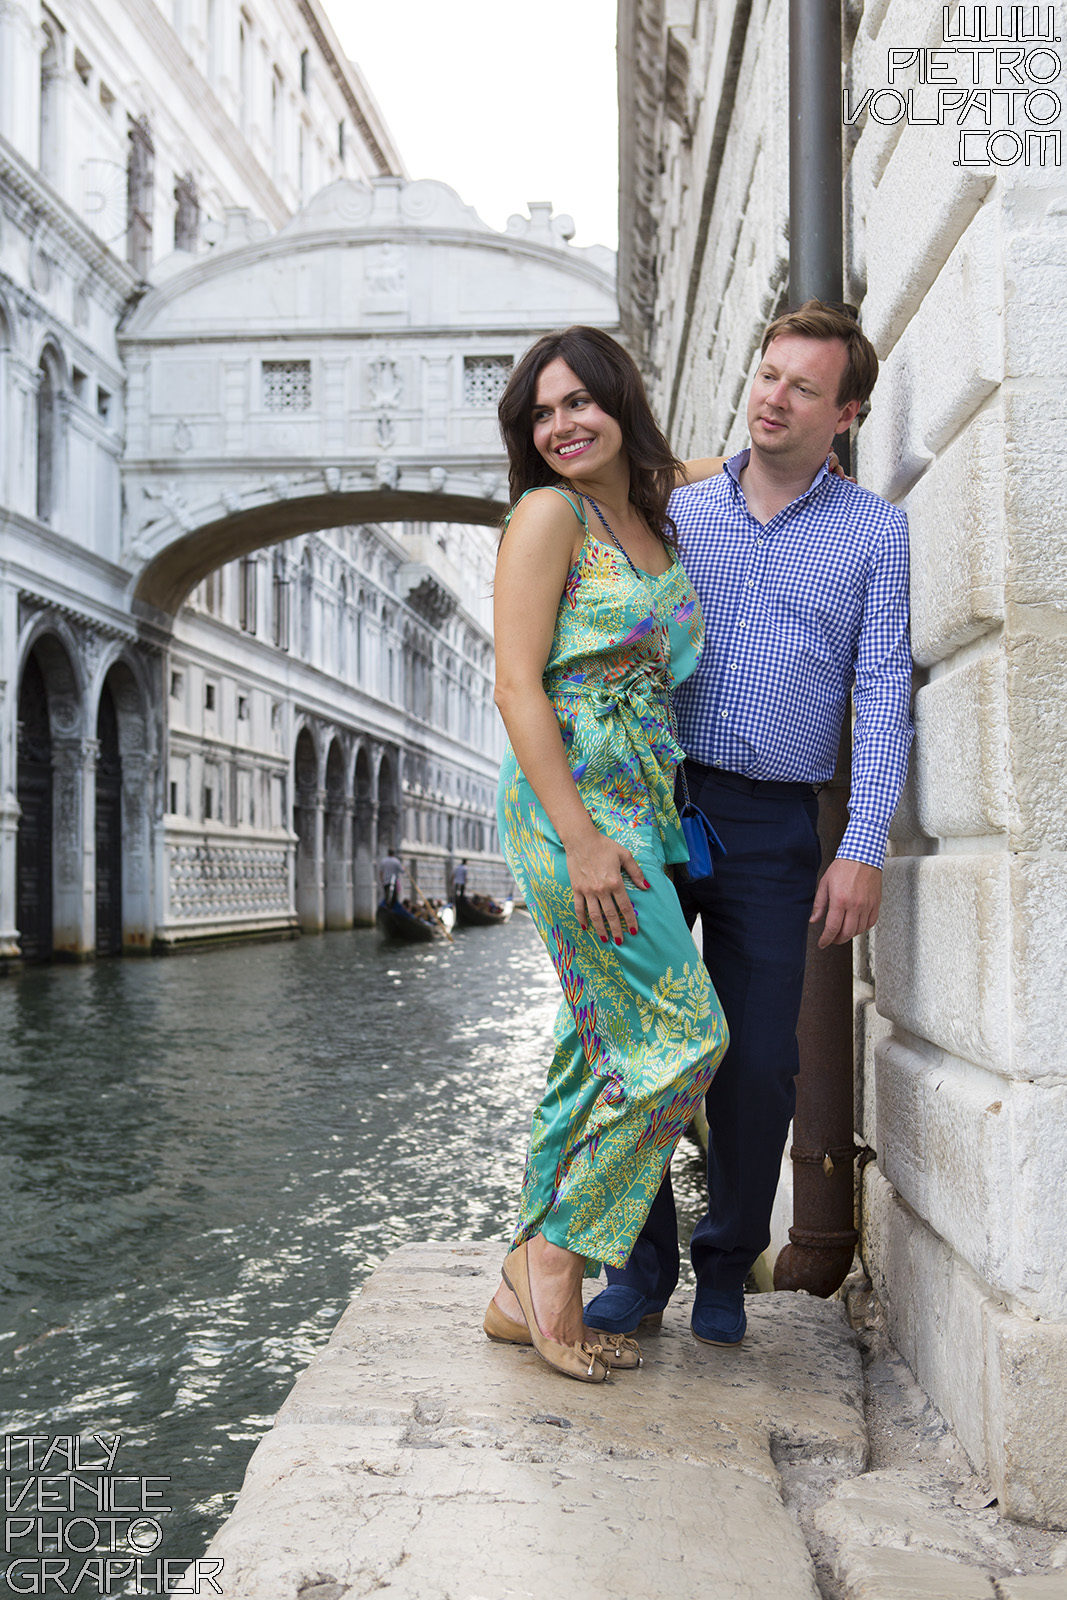 Photographer in Venice for couple romantic vacation photo shoot and walking tour - pictures of romantic walk in Venice italy